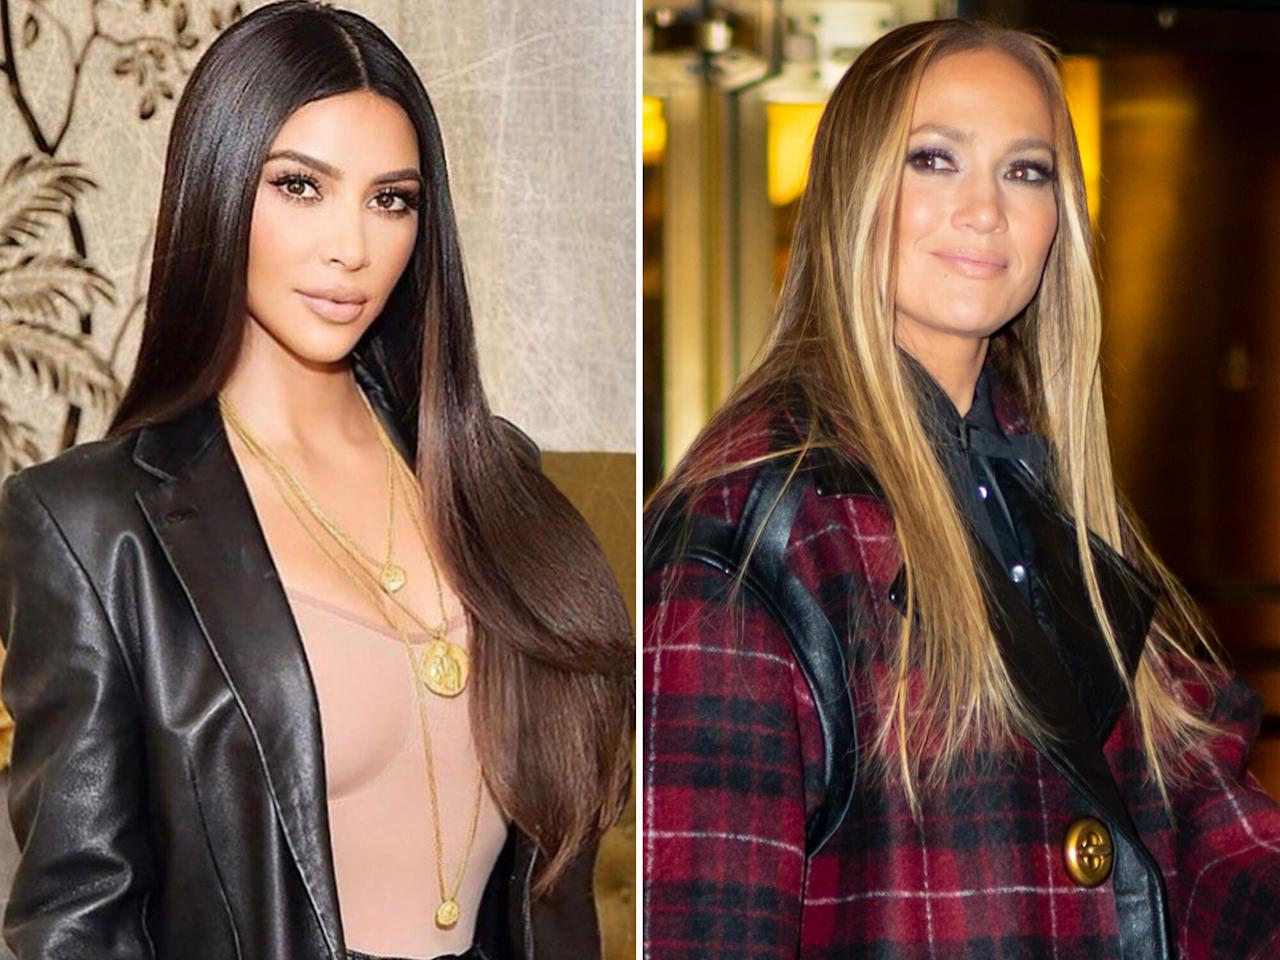 <p>Long hair never goes out of style, but it's taken a backseat to bobs and lobs during the tail end of the last decade. However, if 2020 is the year you want to take your hair to new lengths, look to Jennifer Lopez and Kim Kardashian as inspiration. Both have ditched their blunt bobs for waist-length Rapunzel hair with long, subtle layers. If your hair is currently short but you want to get in on this haircut trend, a set of professionally-installed extensions is always an option. </p>